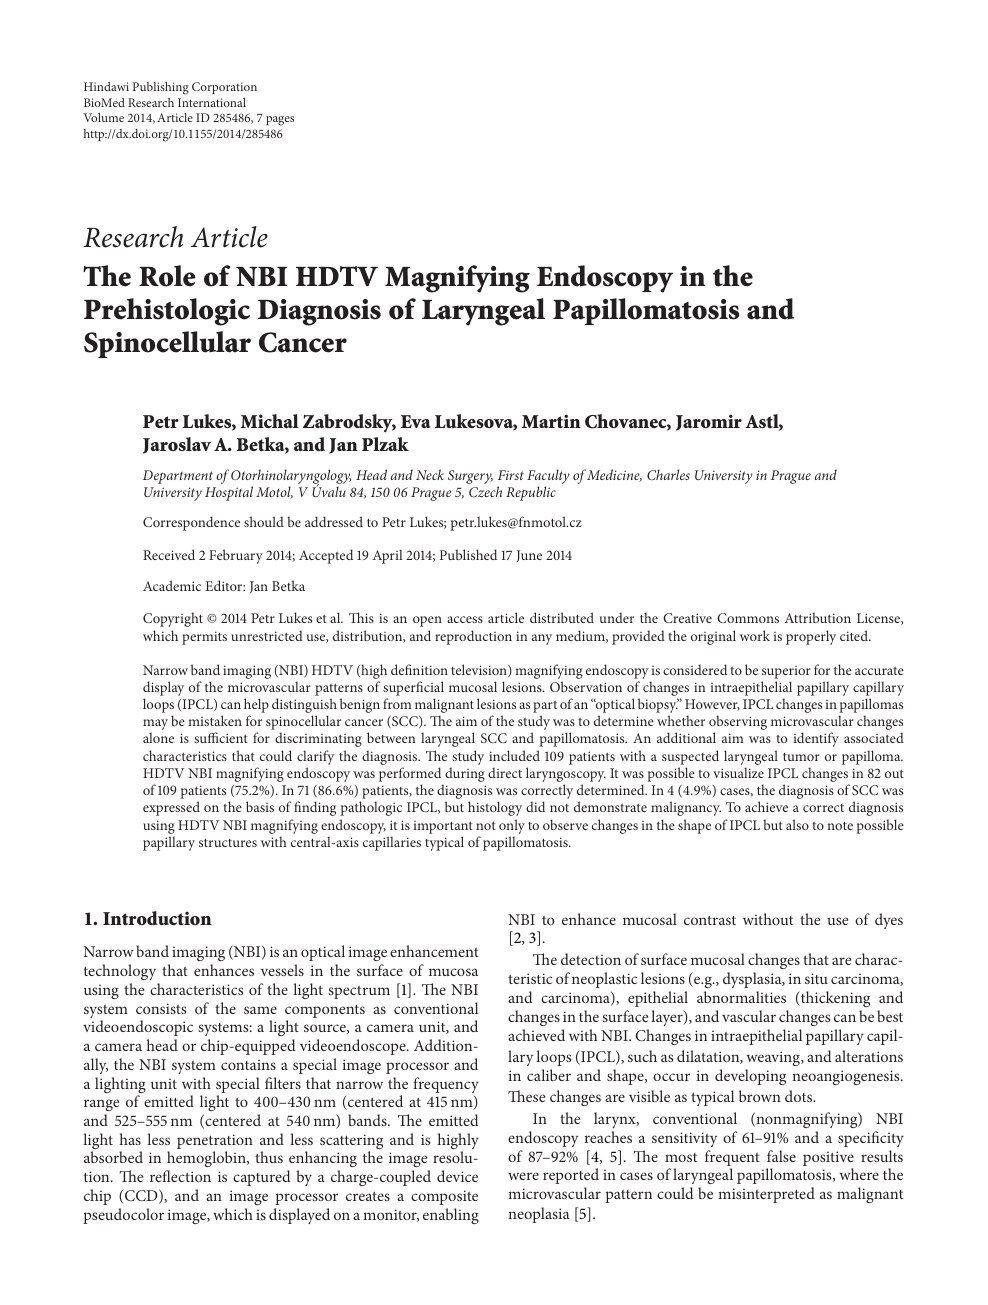 The Role of NBI HDTV Magnifying Endoscopy in the